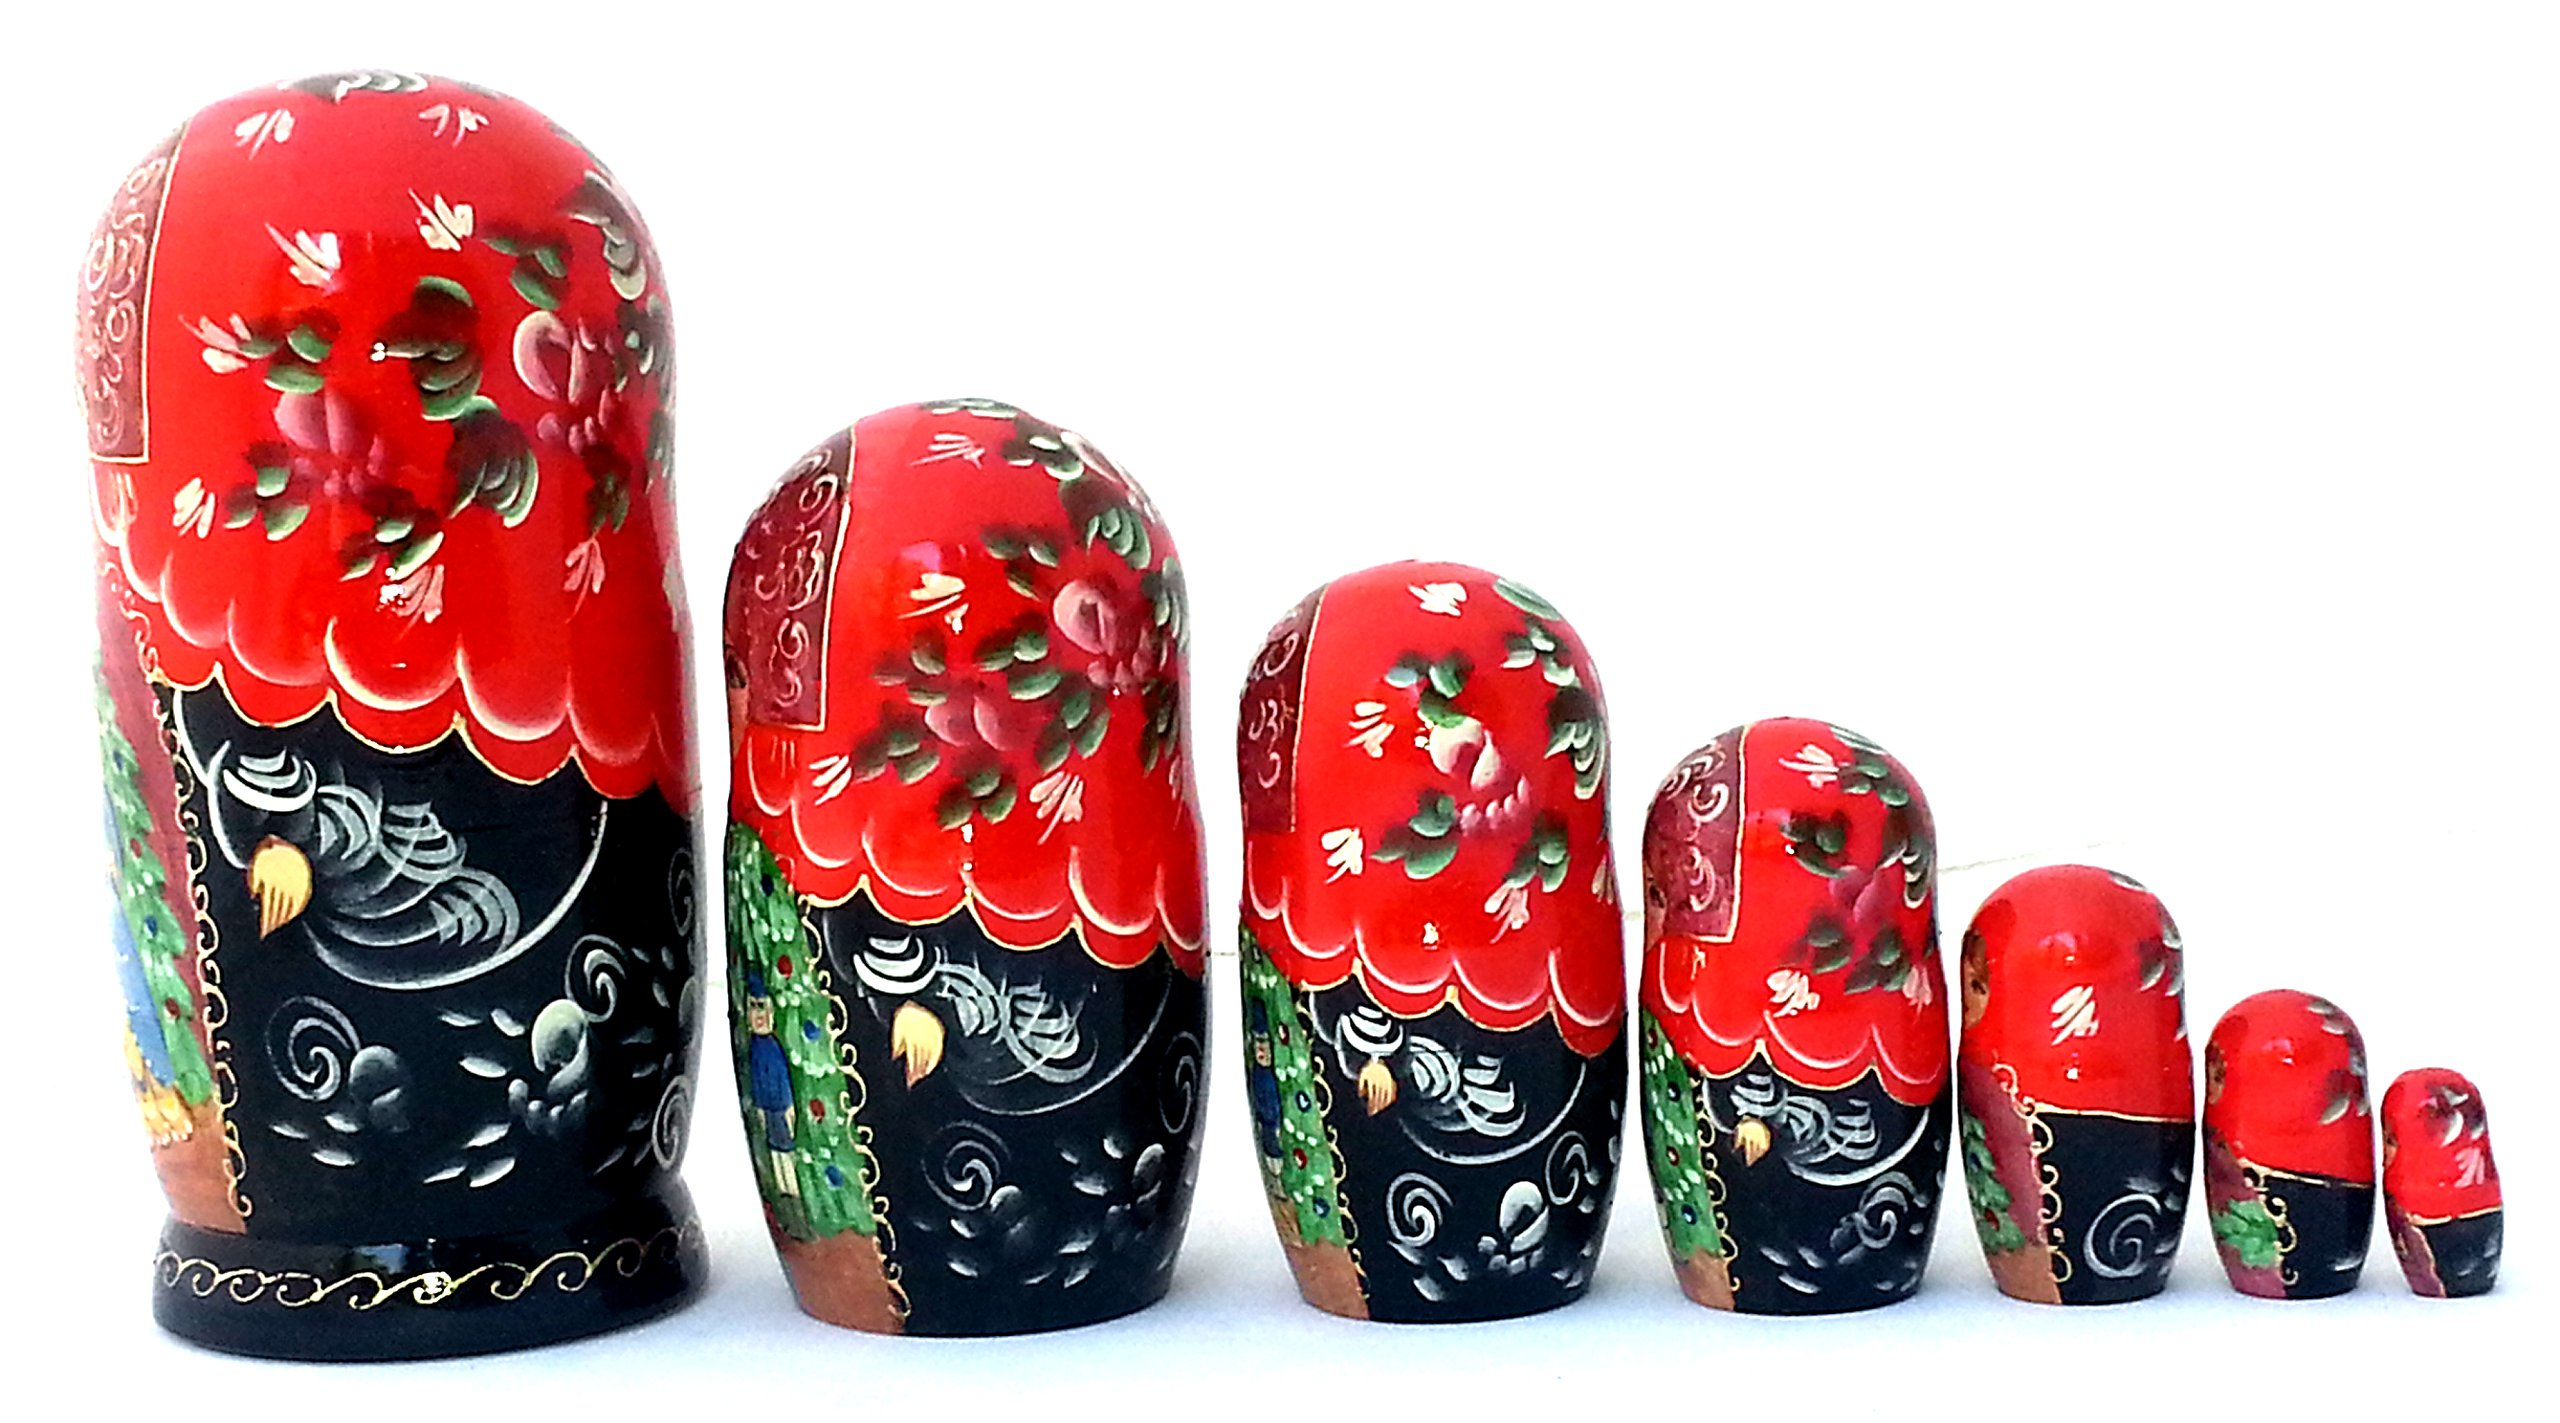 Nutcracker fairy tale Russian Hand Carved Hand Painted Nesting 7 piece DOLL Set 7'' tall / ballet by BuyRussianGifts (Image #3)